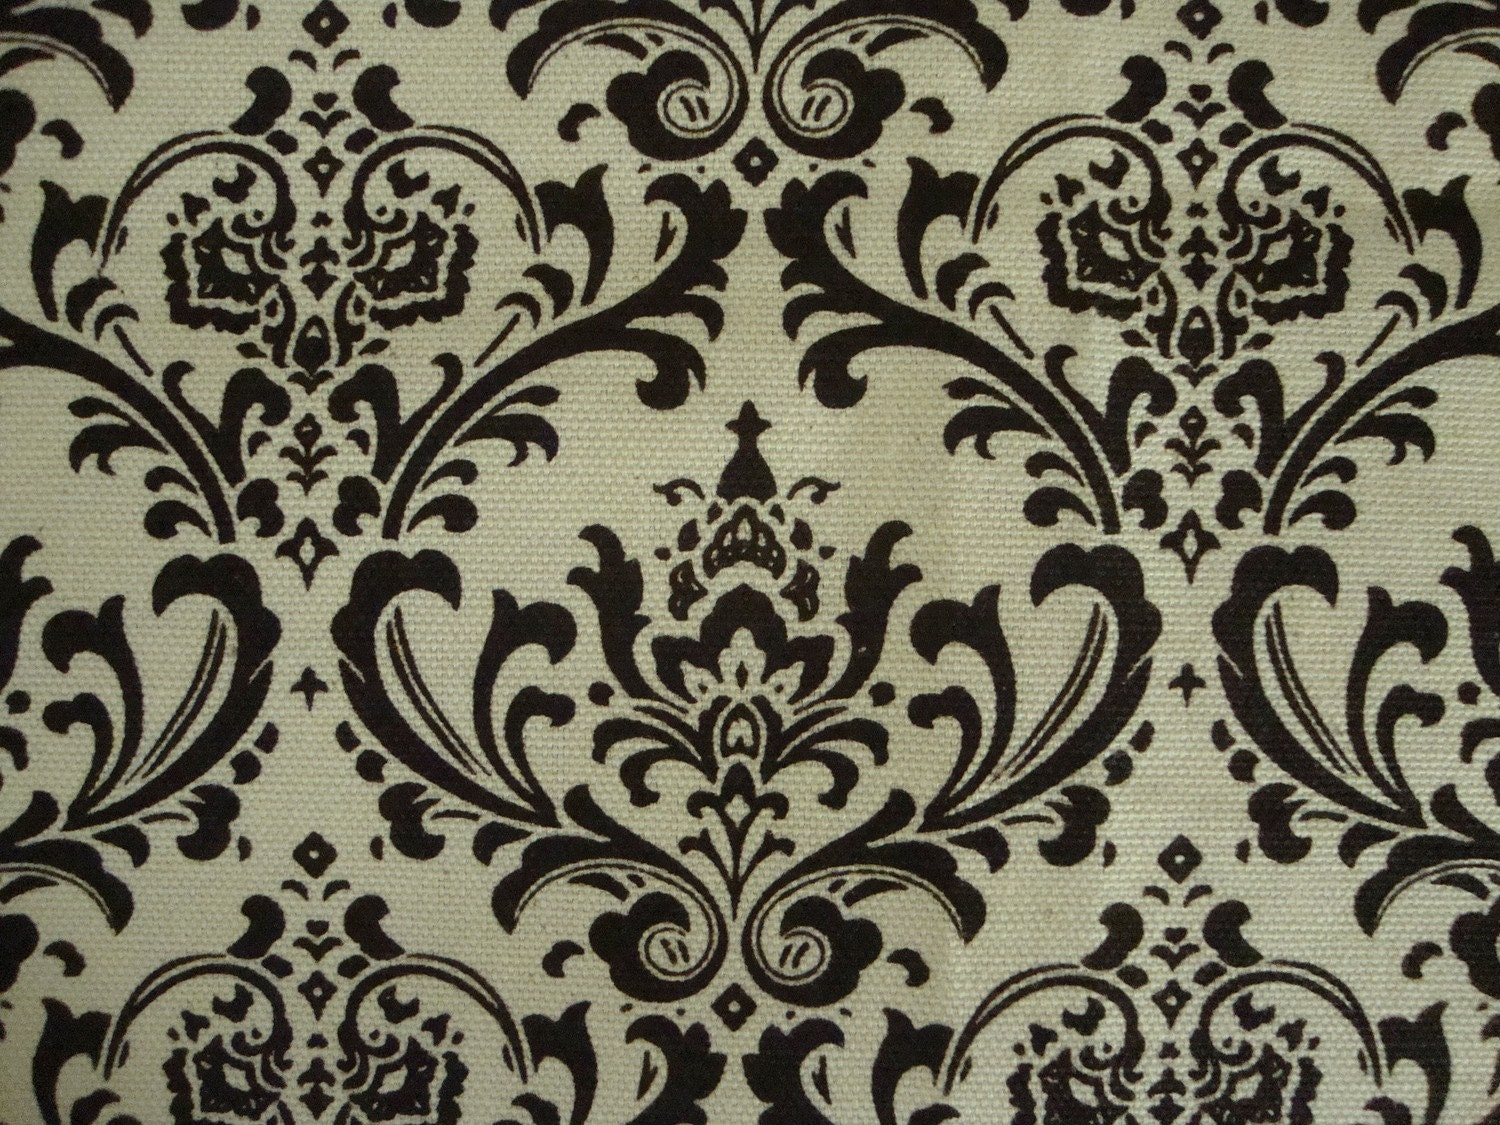 upholstery fabric black and white baroque by thedesignerstouch